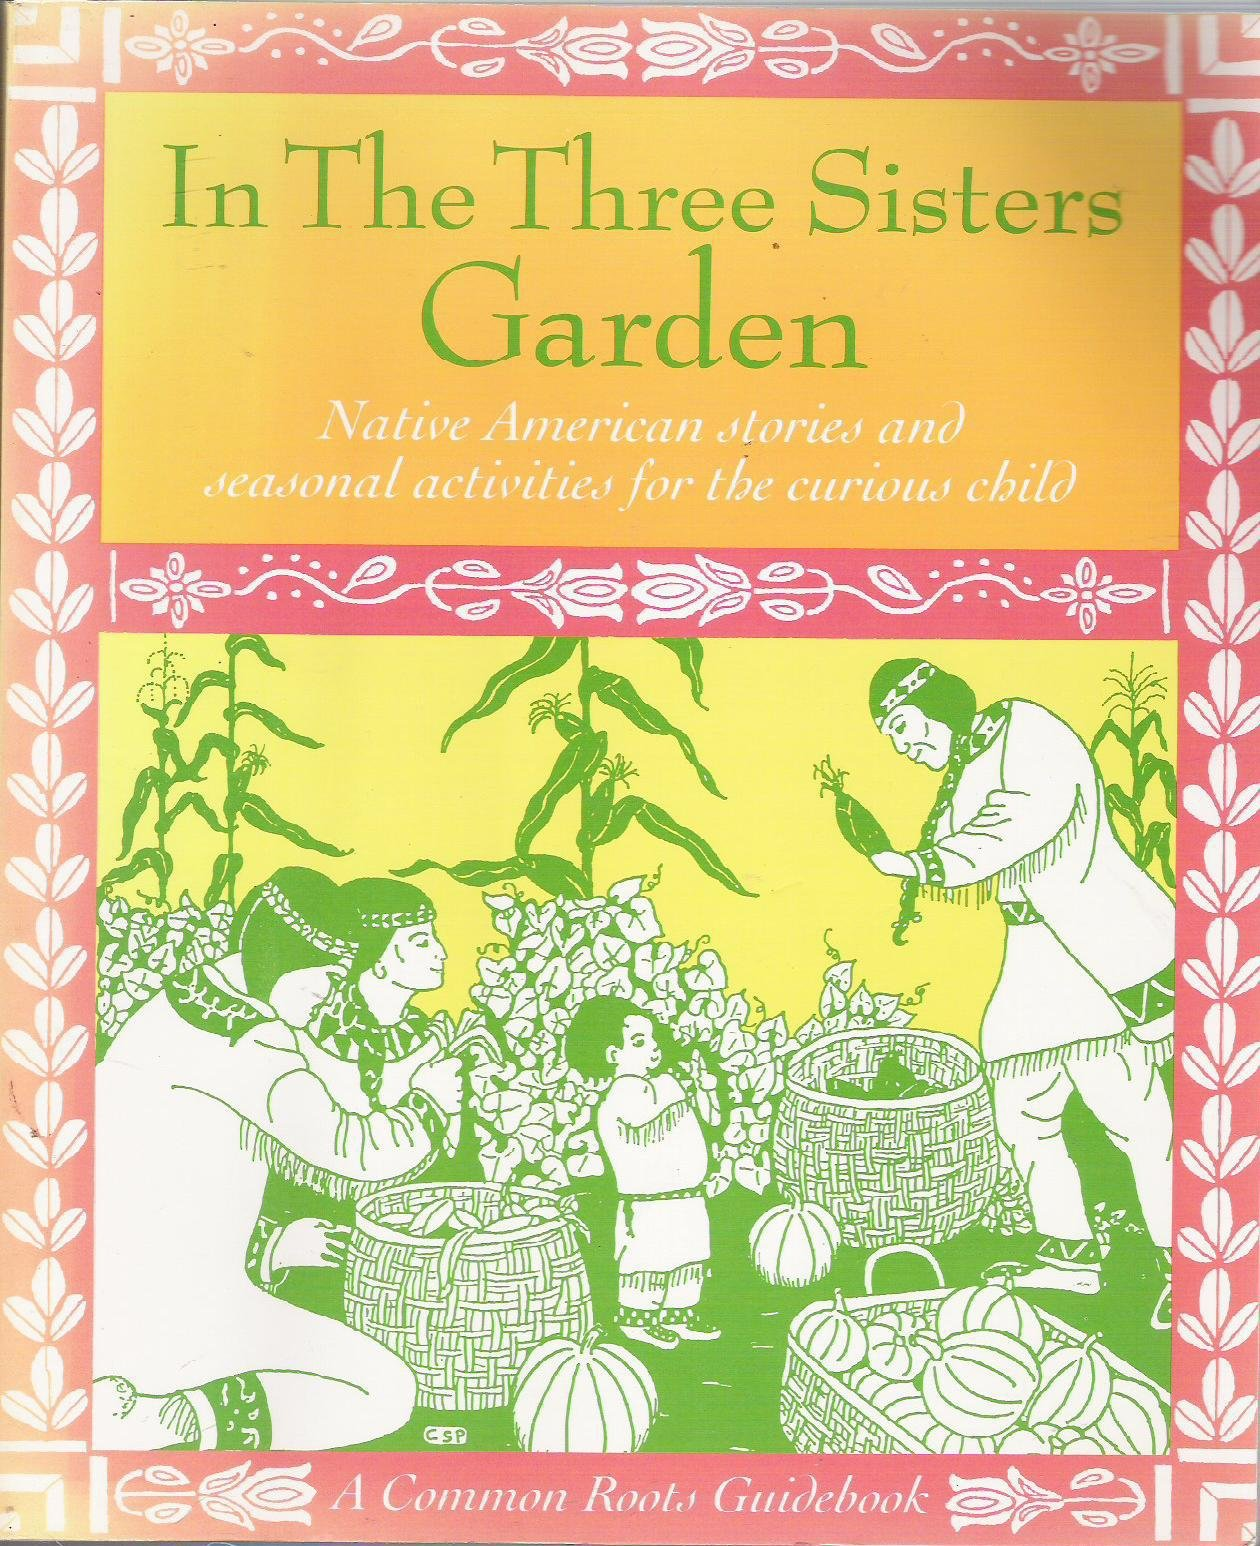 in the three sisters garden native american traditions myths and